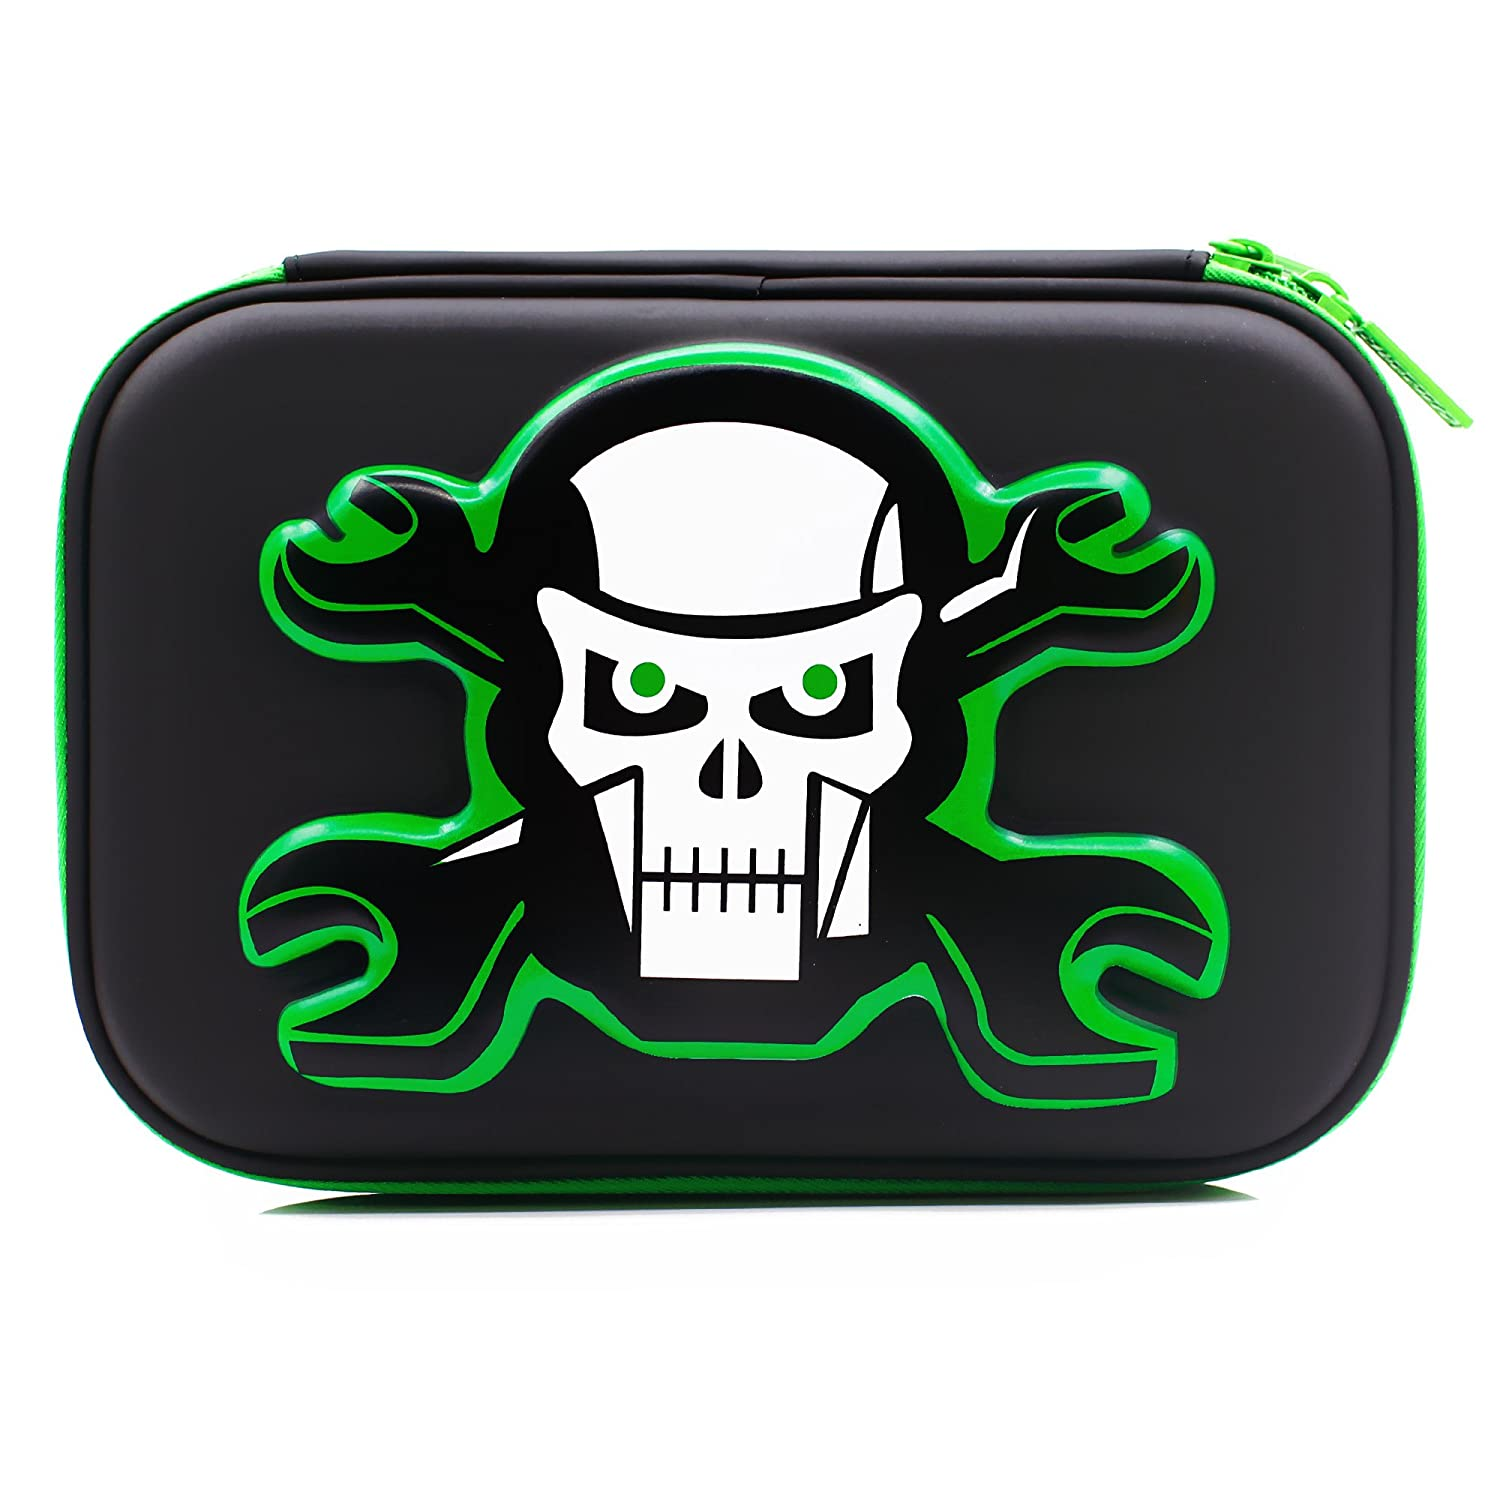 School Boys Cool Skull Hardtop Pencil Case Big Pencil Box With Compartment For Kids (Black) SOOCUTE